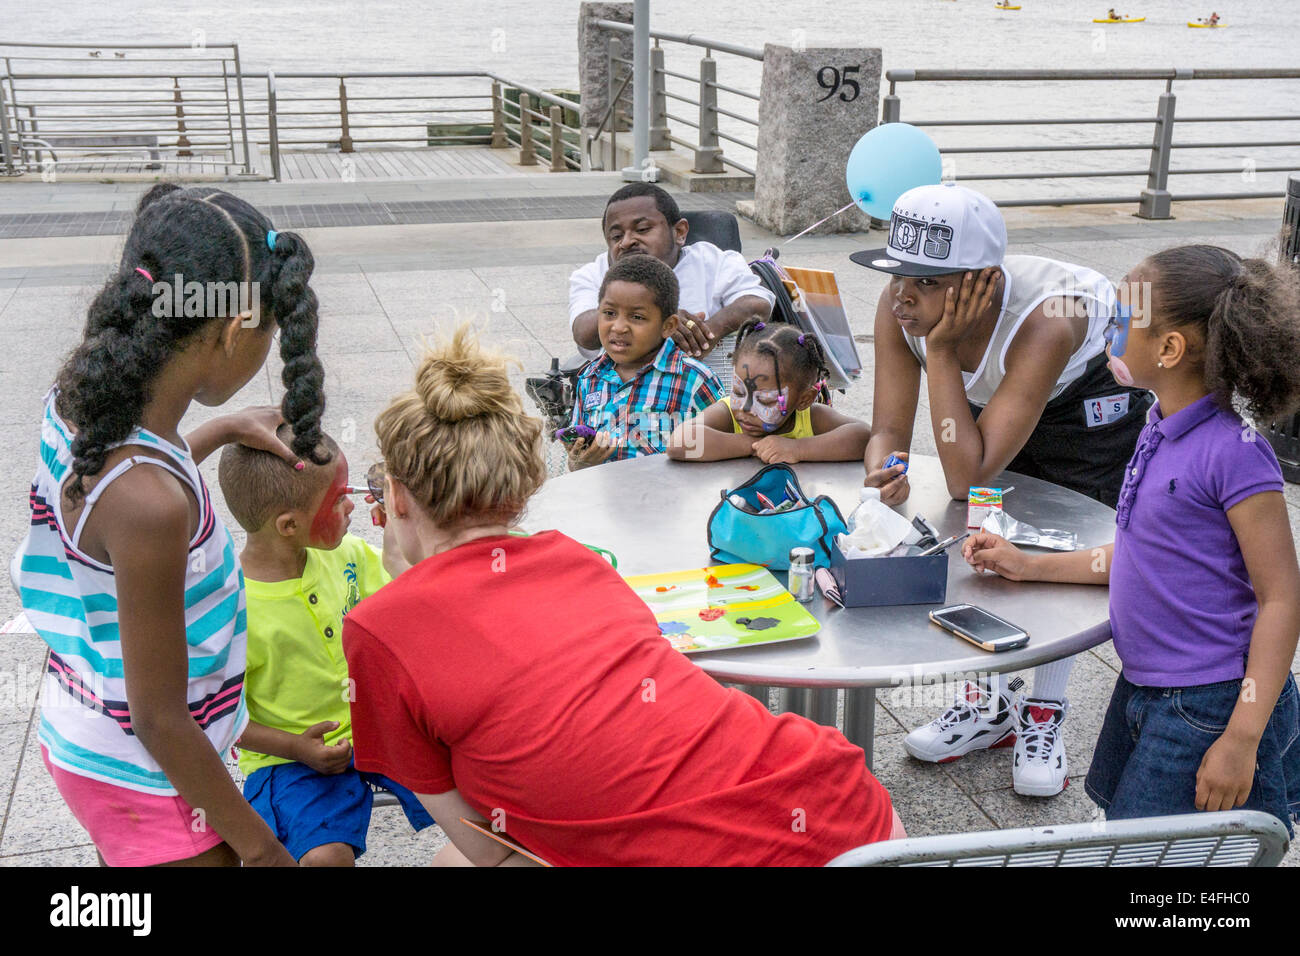 Caucasian woman artist face painting small black boy as other children watch at birthday party in Hudson River park - Stock Image